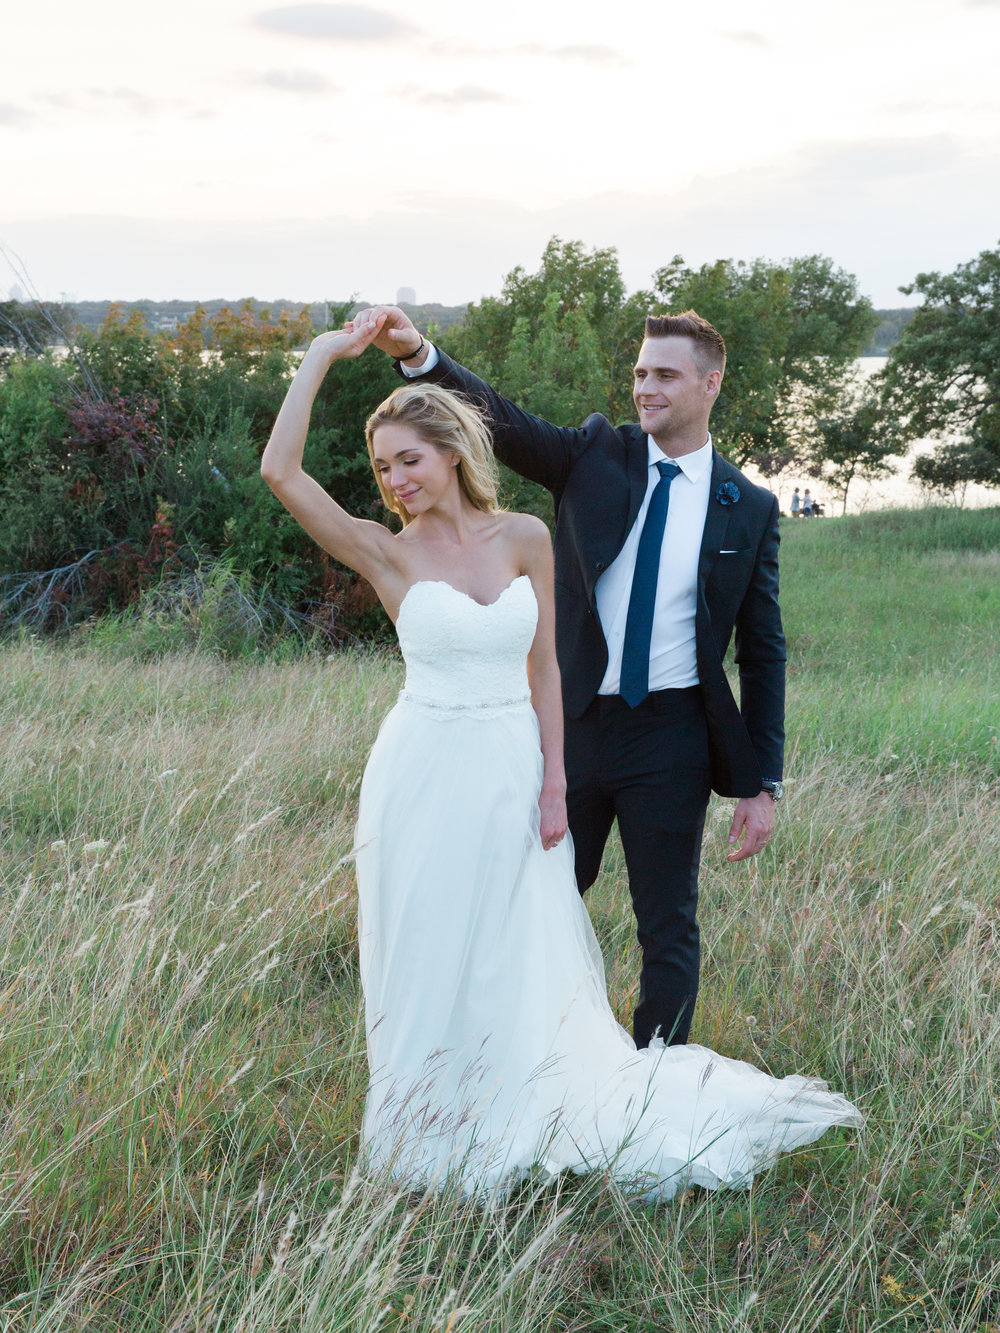 Bonphotage Destination Wedding Fine Art Wedding Photography - Dallas Texas